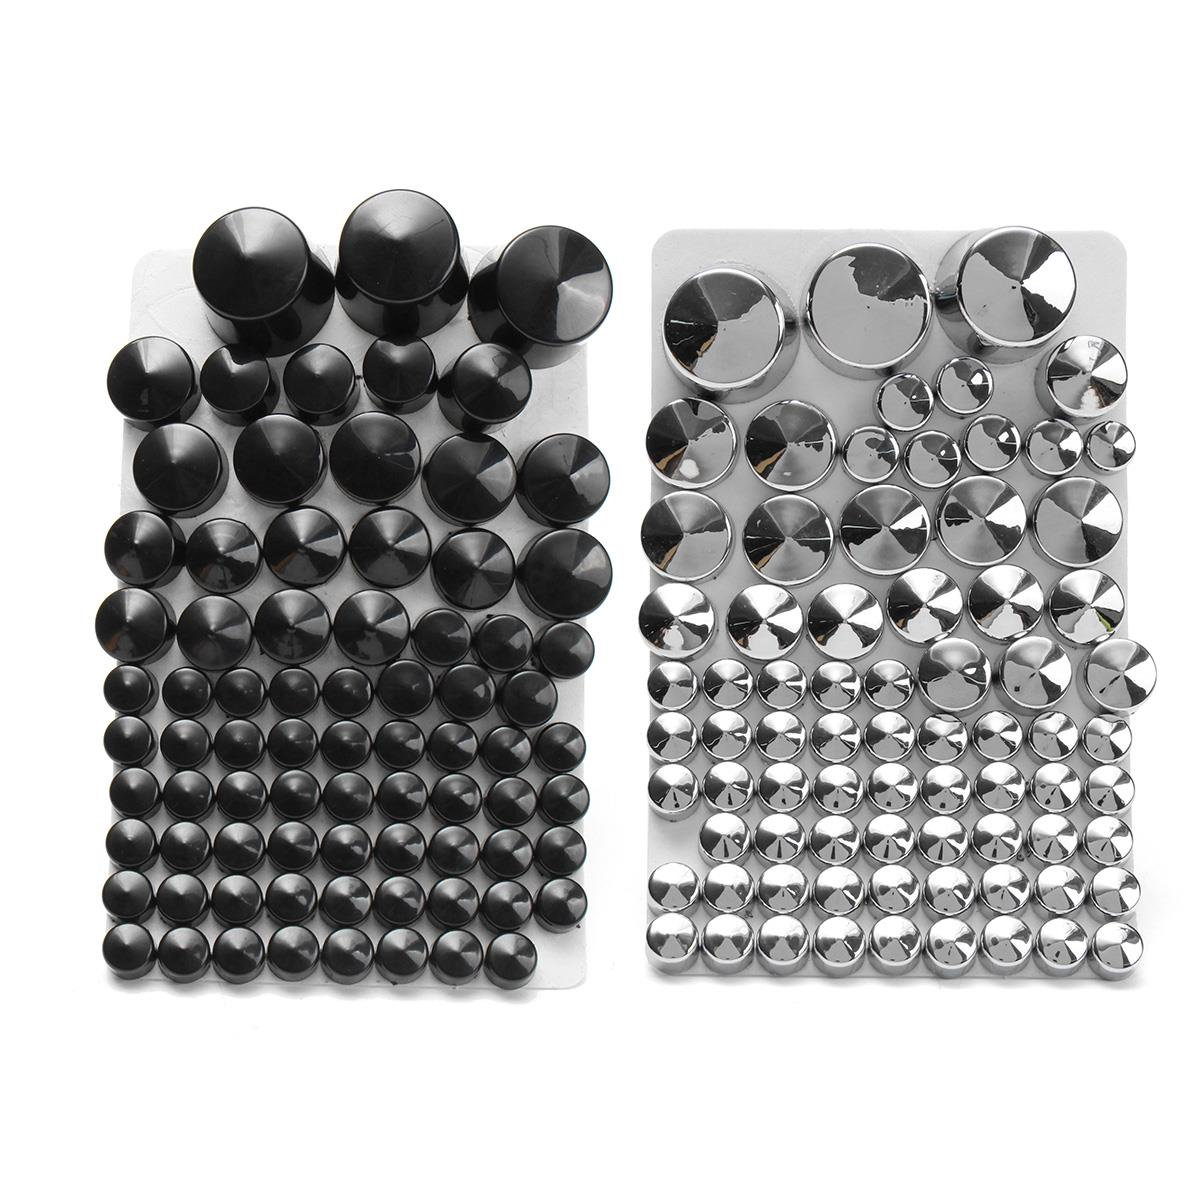 Chrome ABS Bolt Toppers Bolt Cap For Harley/Davidson/Softail/Twin/Cam 1984-2006  Silver/Black 87 pcs aftermarket free shipping motor parts toppers caps for 2007 2008 2009 2010 2011 2012 harley davidson softail twin cam chrome